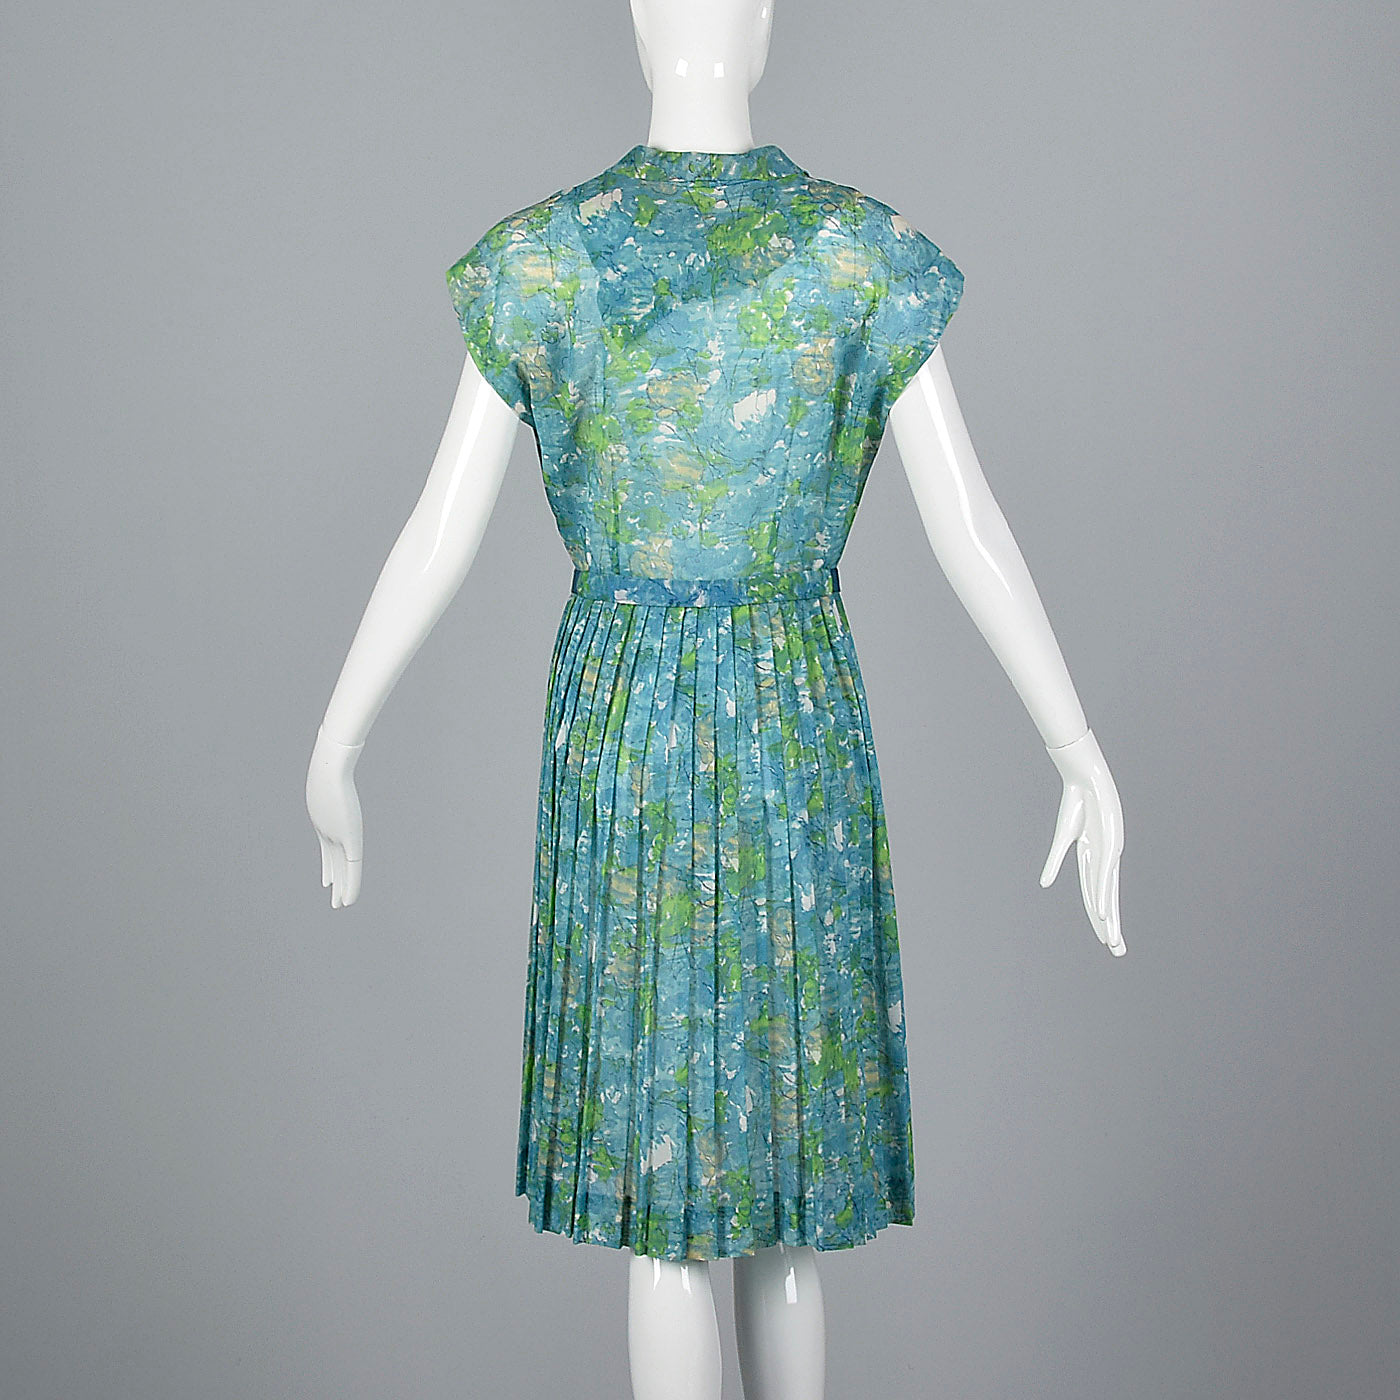 1950s Blue Floral Print Dress with Pleated Skirt